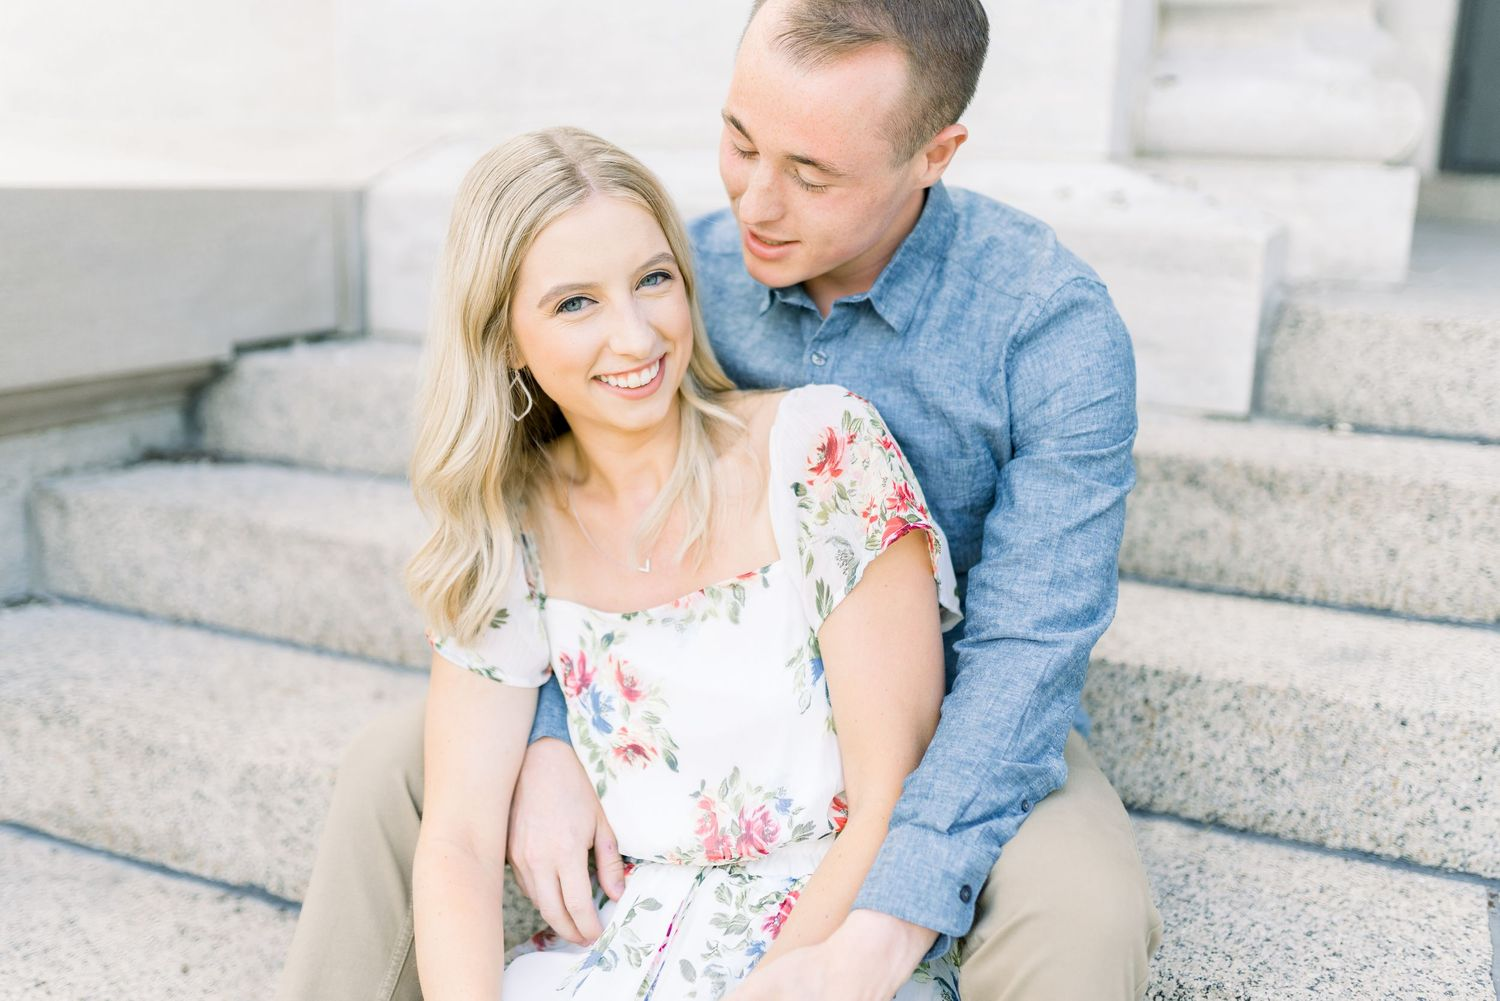 Light and airy film wedding photography engagement session in downtown des moines iowa with Nicole Laing